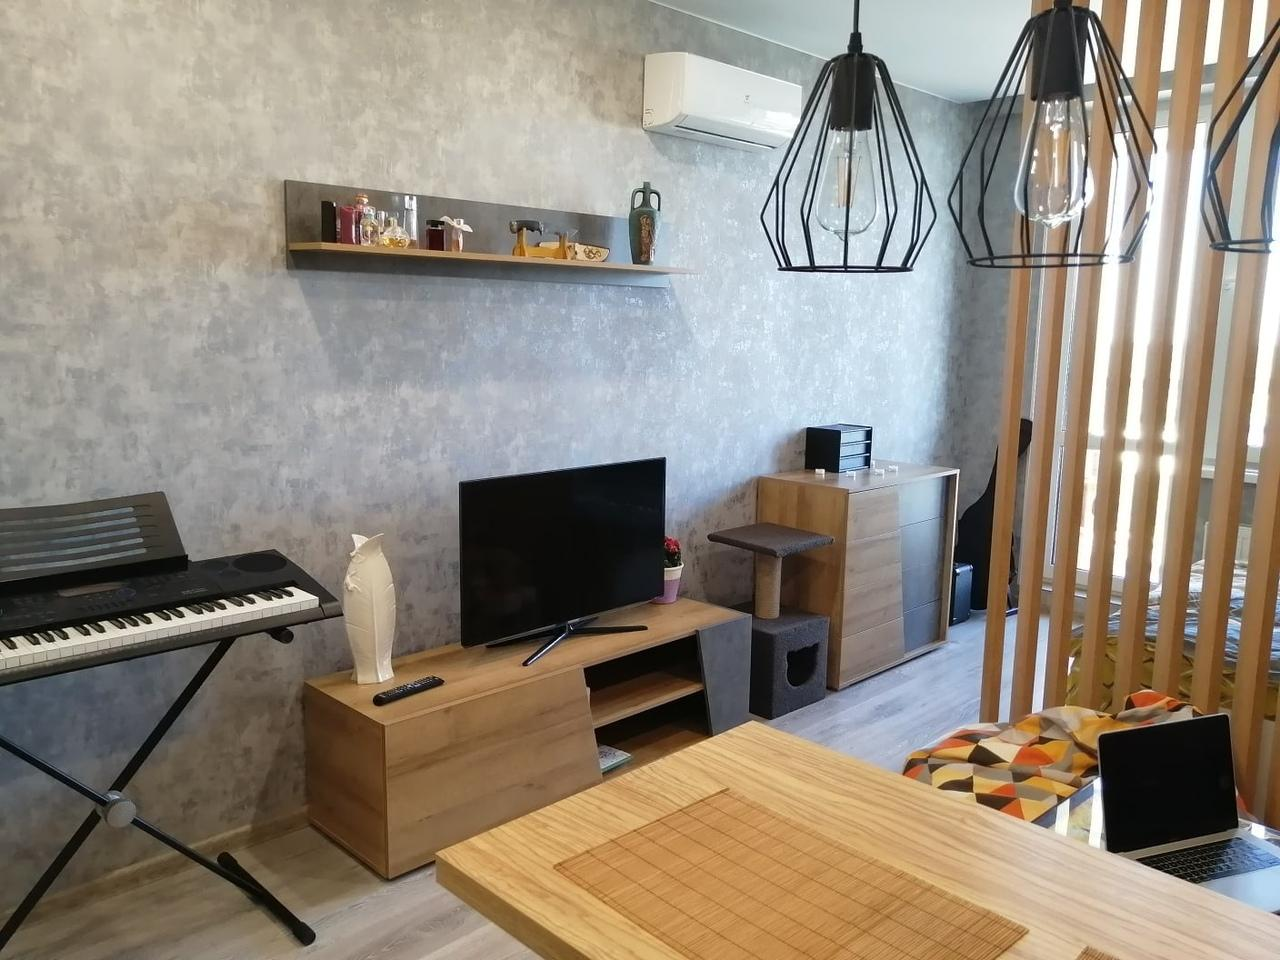 Apartment, Studio, 25 m2 in Moscow 89995453830 buy 2